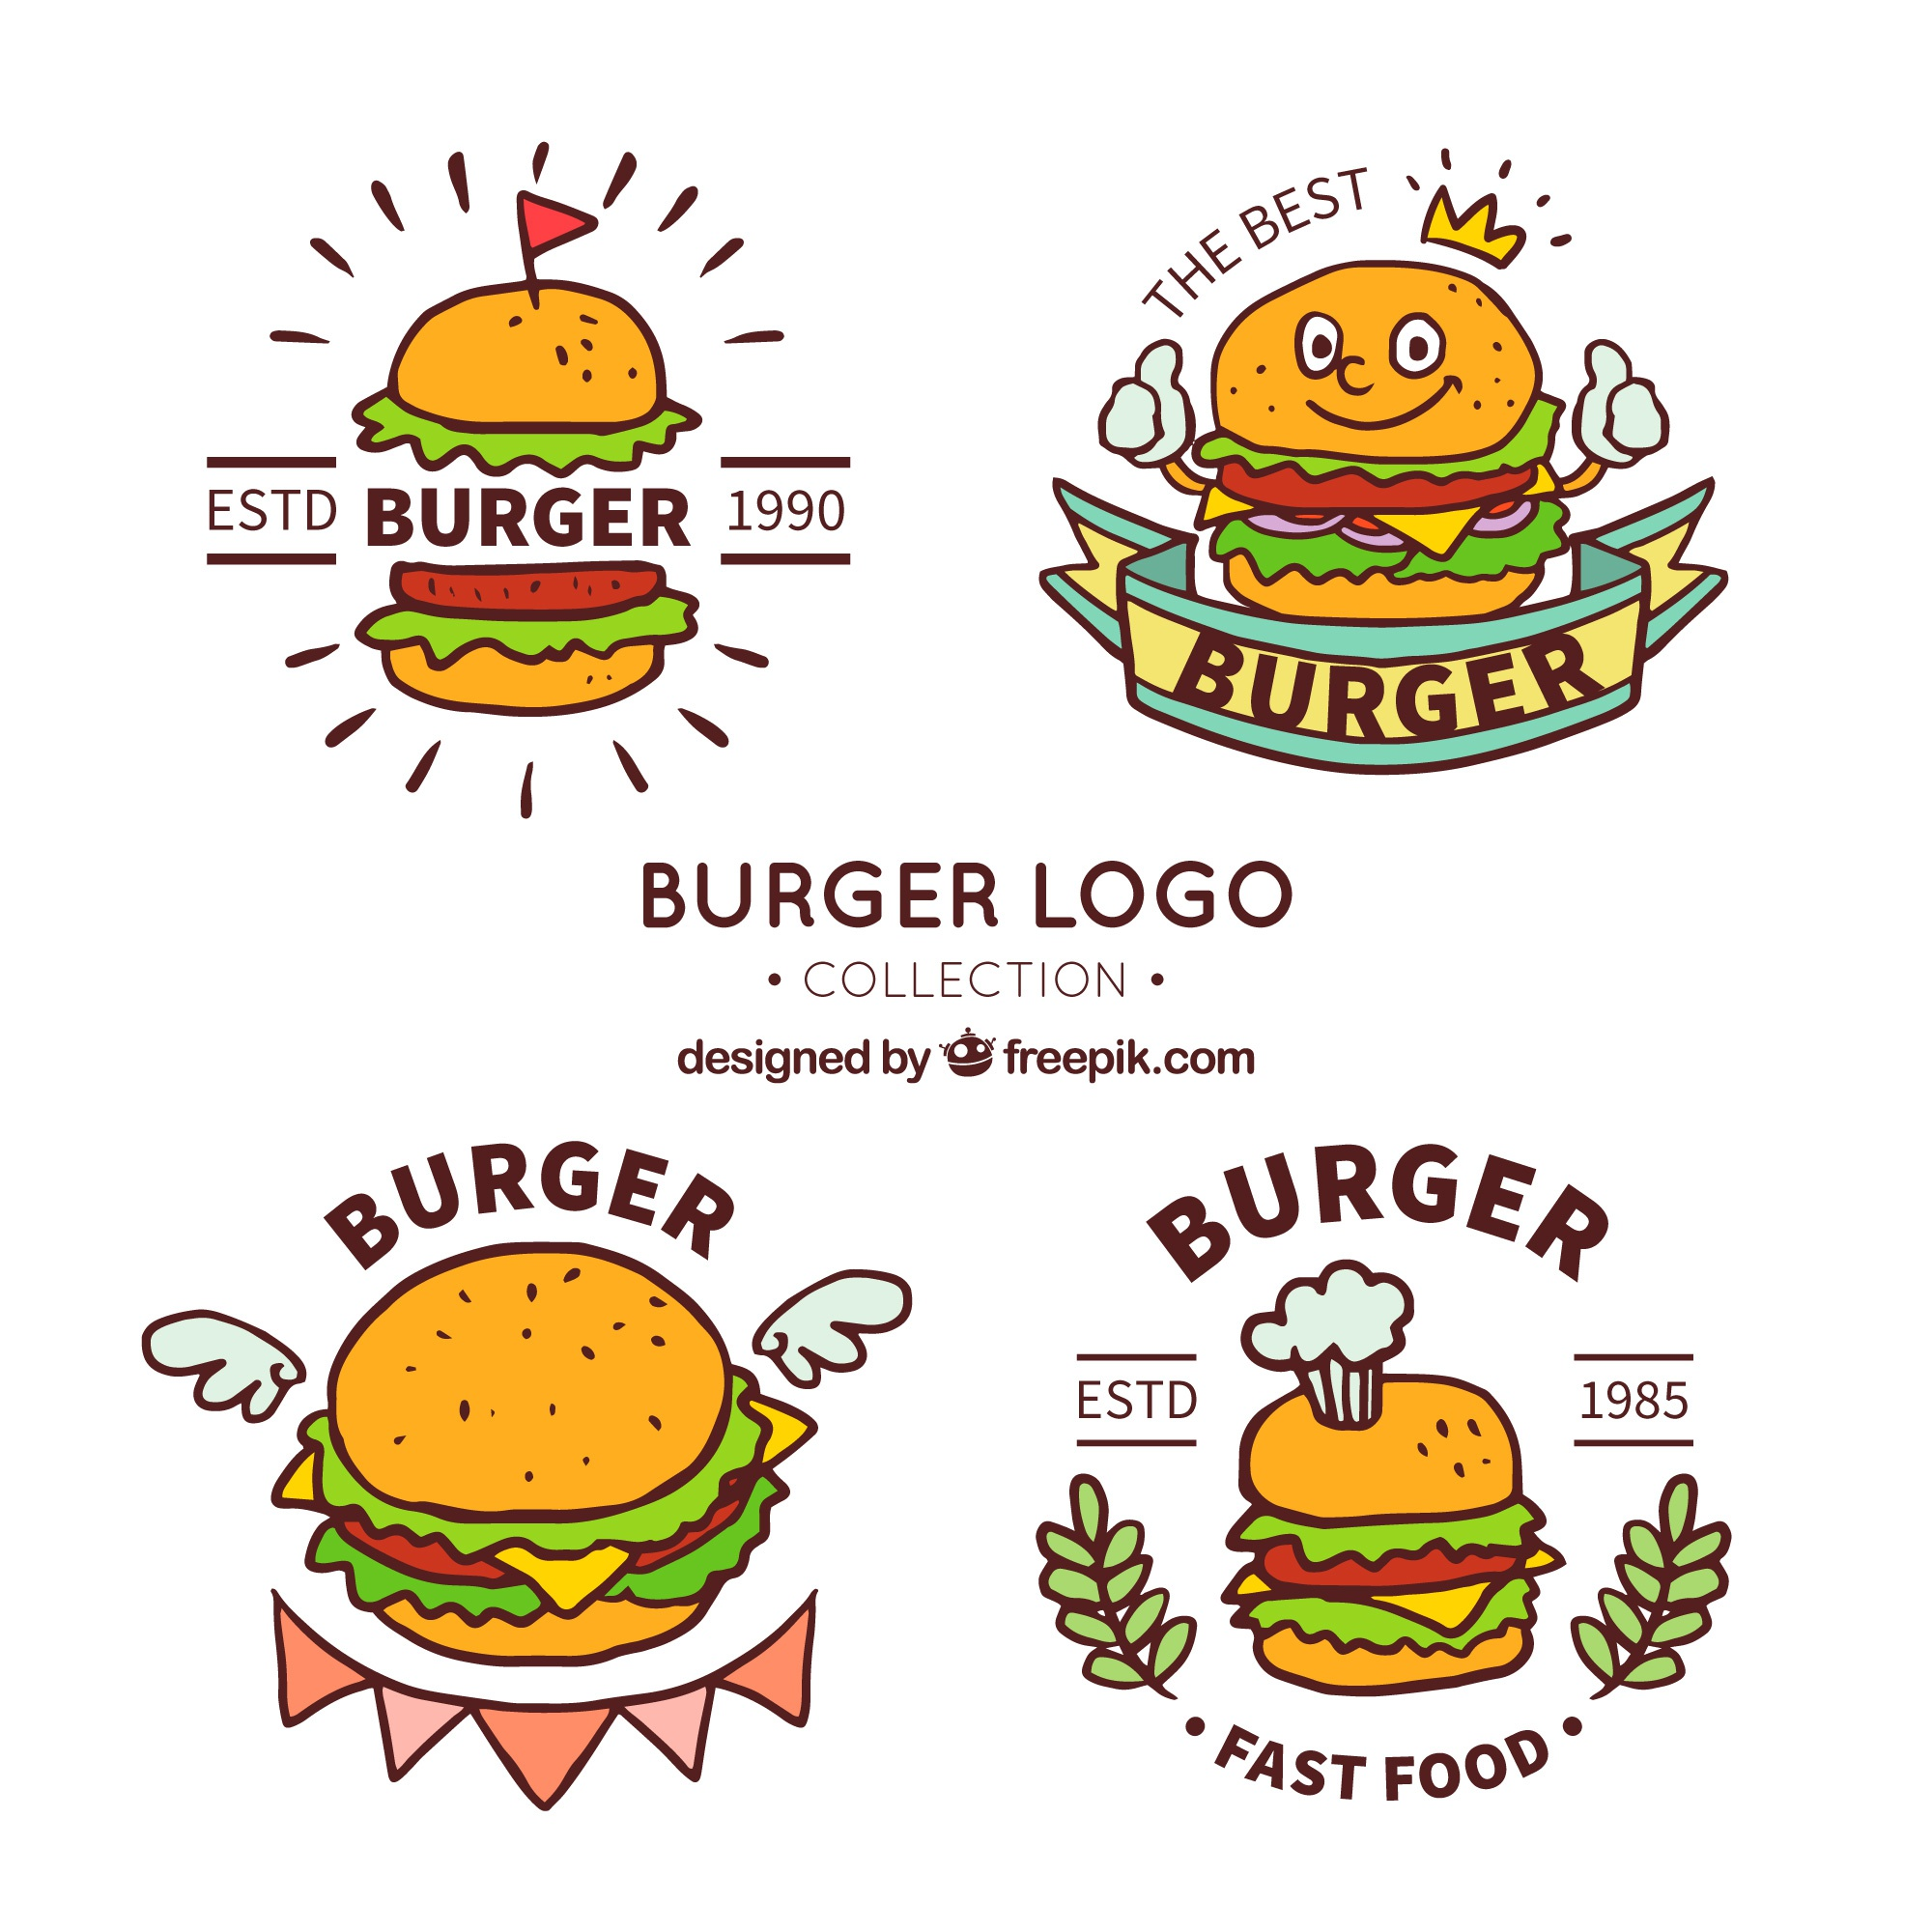 Grande collection de logos de hamburger en style dessiné à la main